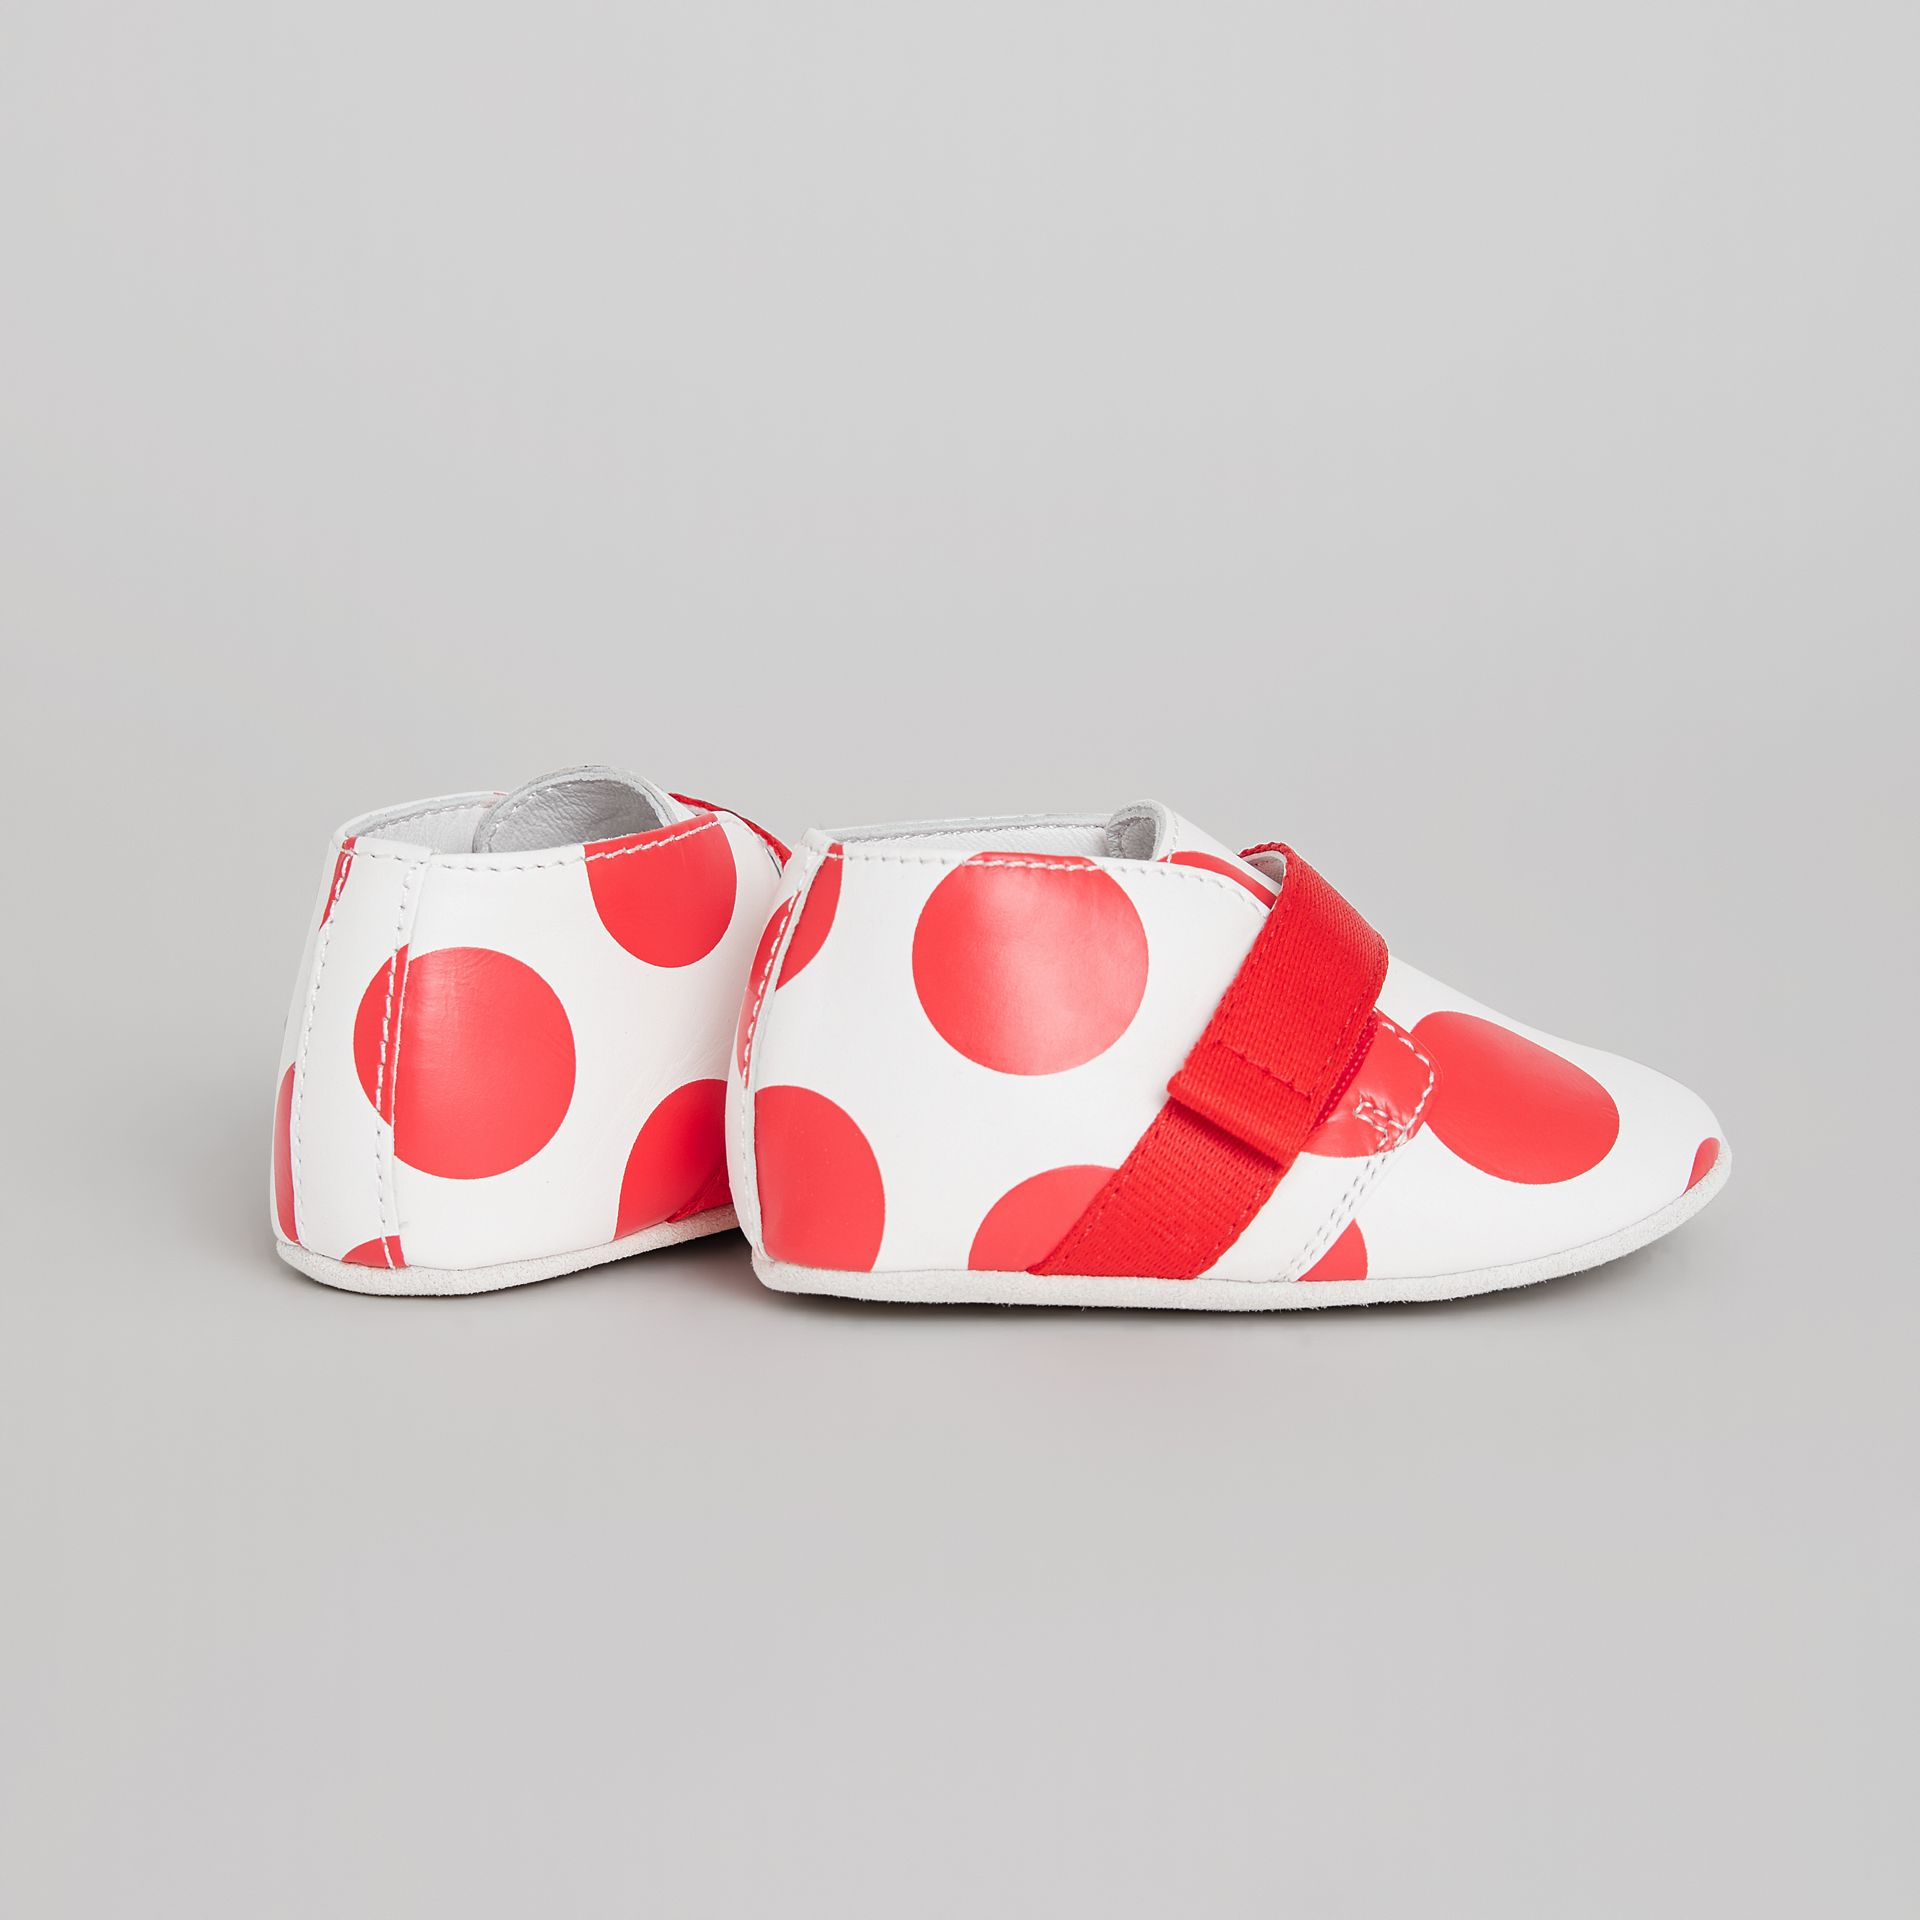 Spot Print Leather Shoes in Bright Red - Children | Burberry - gallery image 2